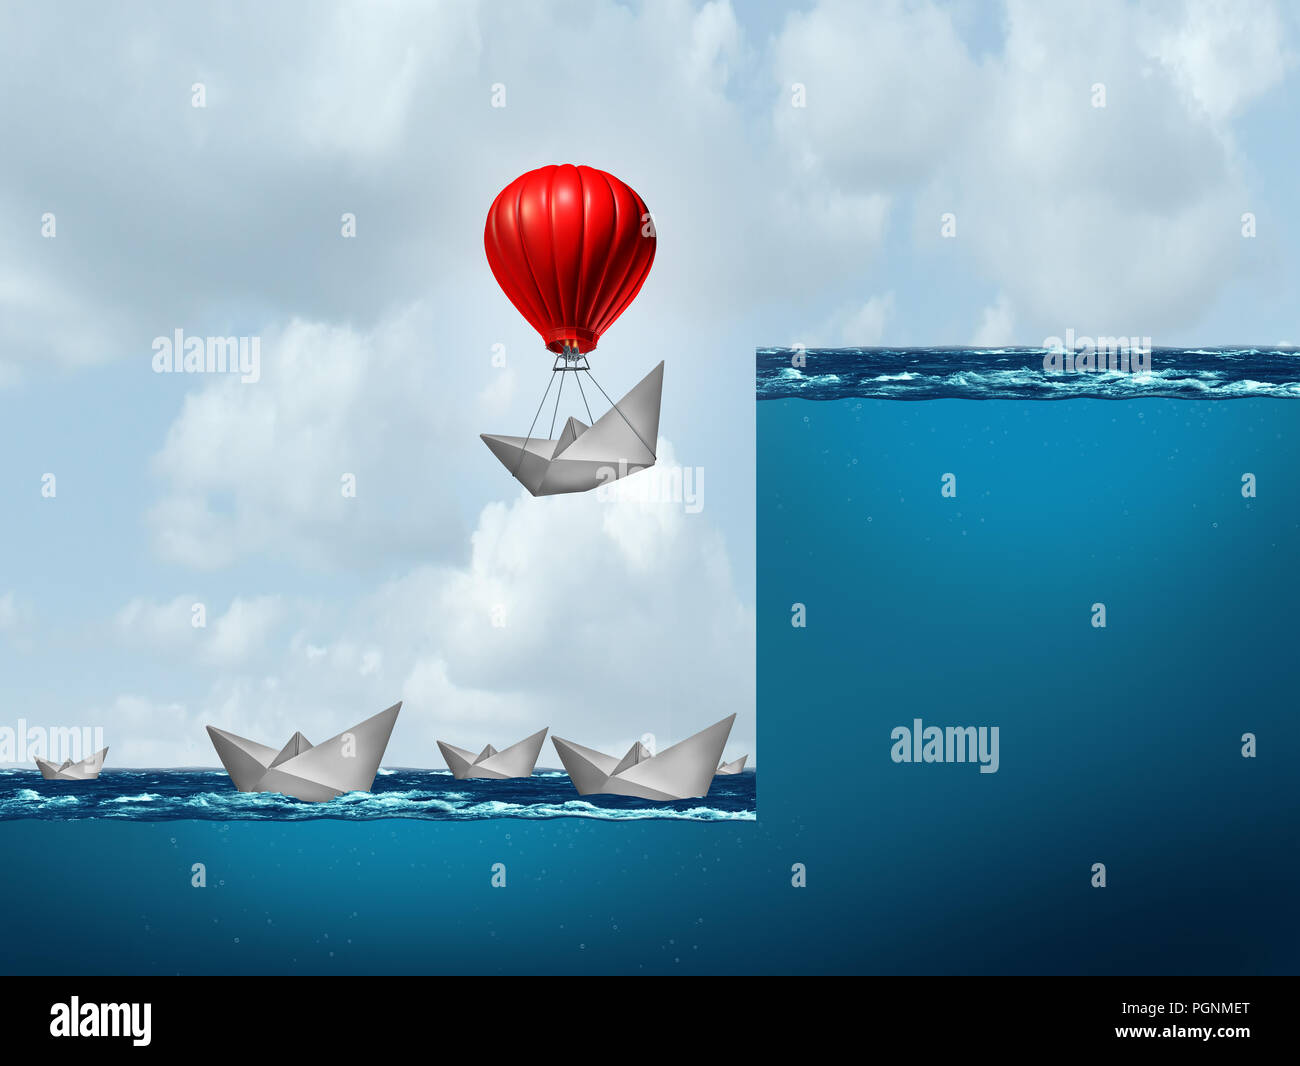 Concept business leadership as a power success strategy conceptual metaphor. - Stock Image